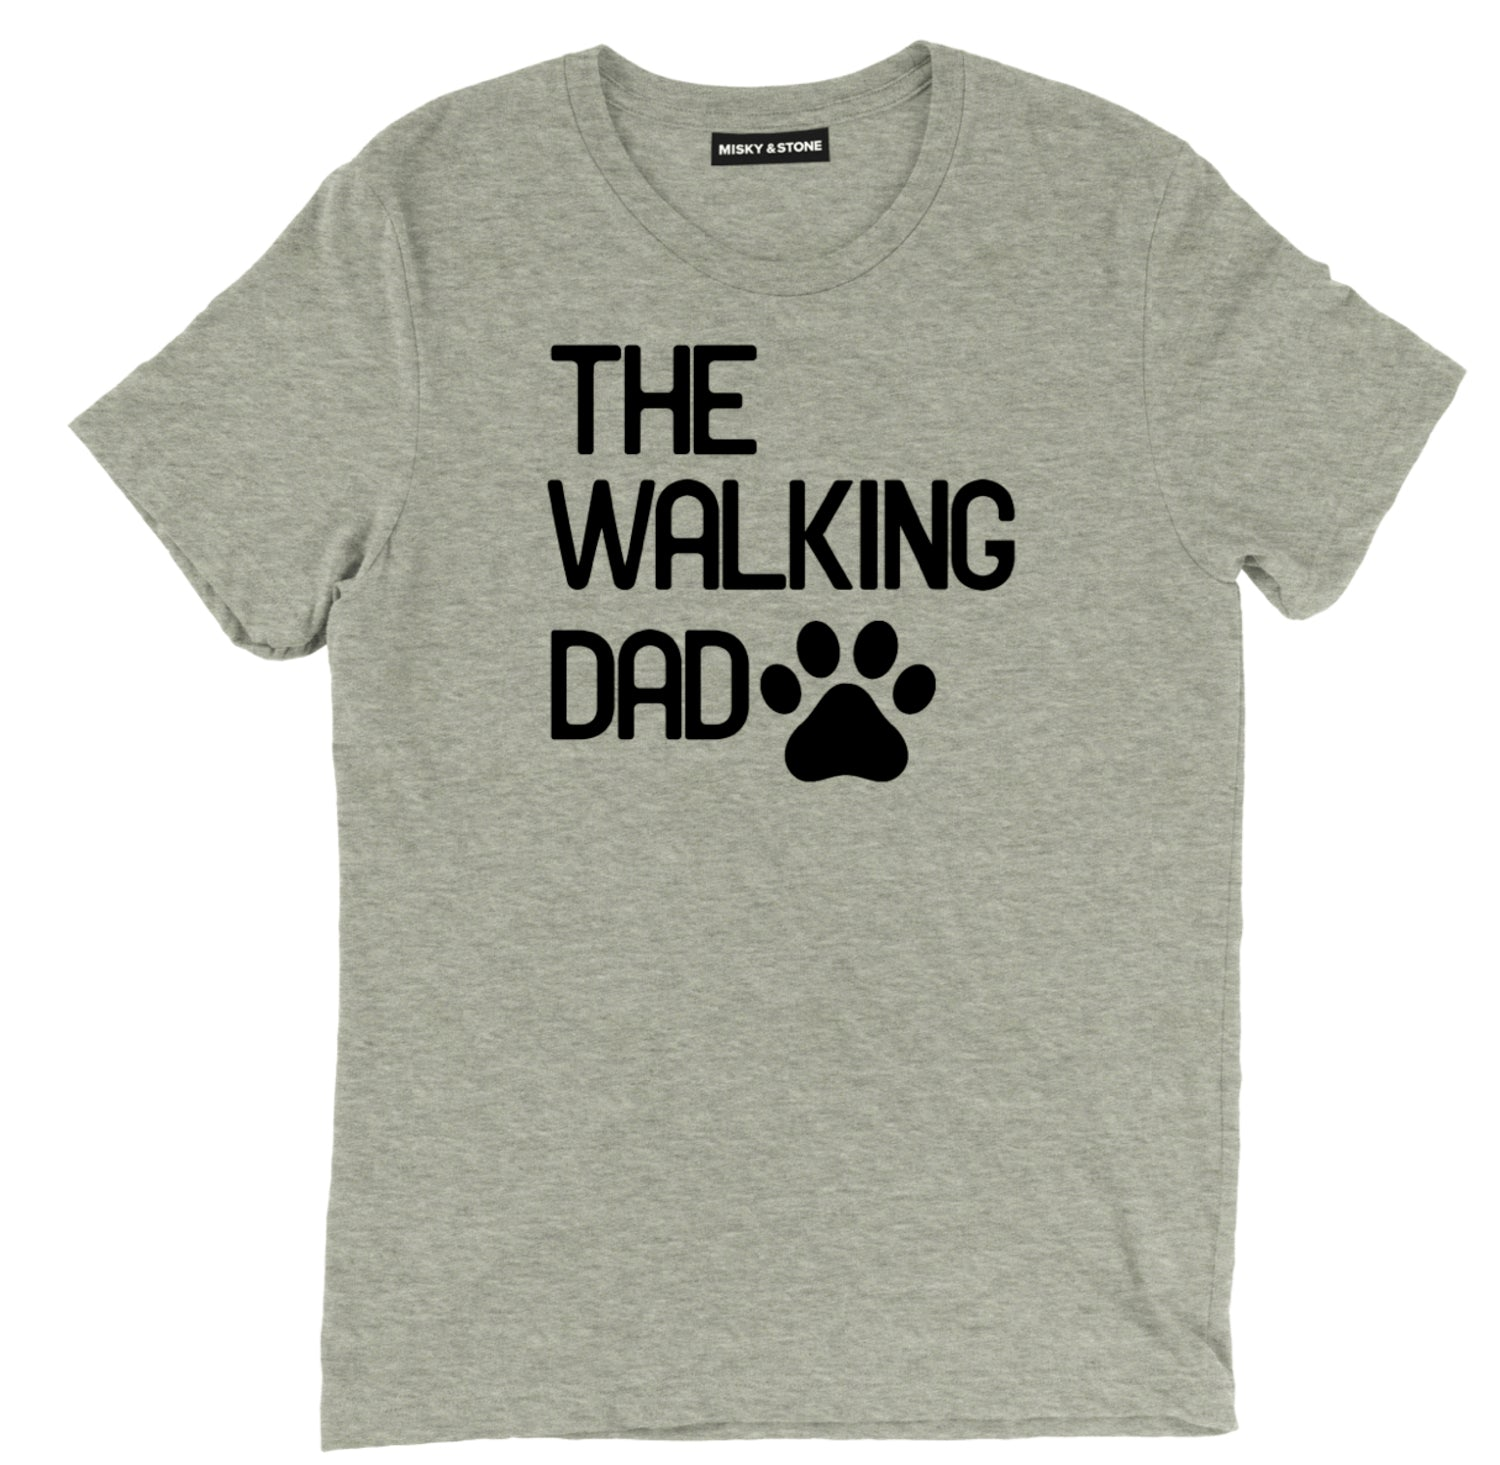 the walking dad tee, funny dog parent tee, dog dad tee, dog mom tee, walking t shirt